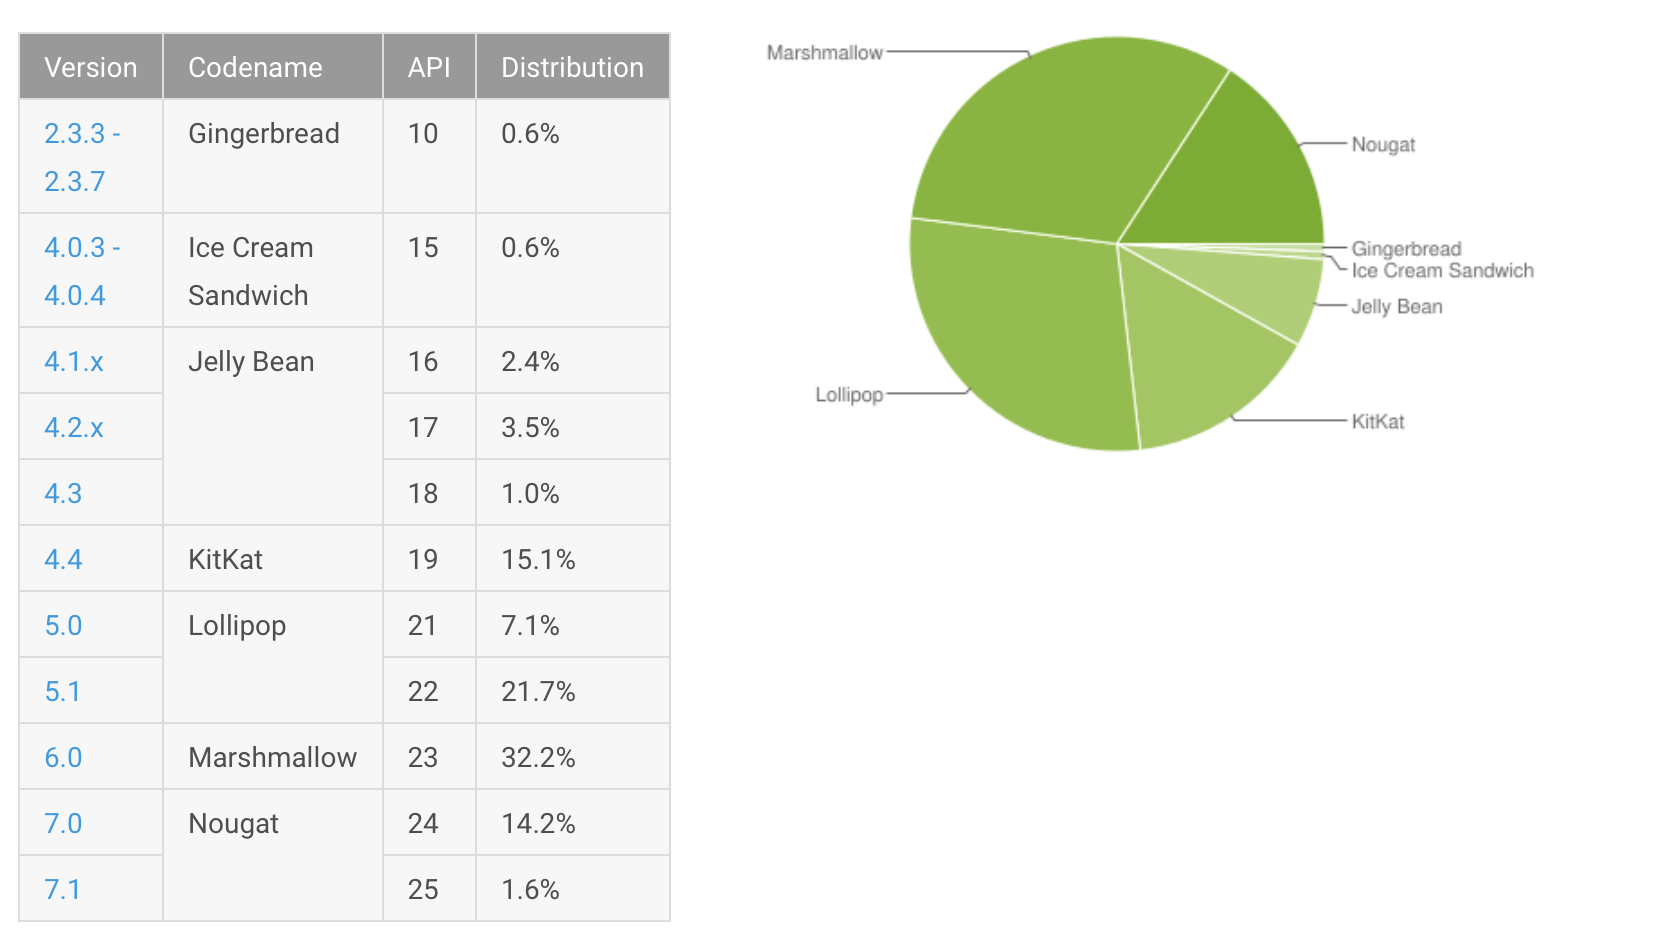 Chart showing Android September distribution numbers